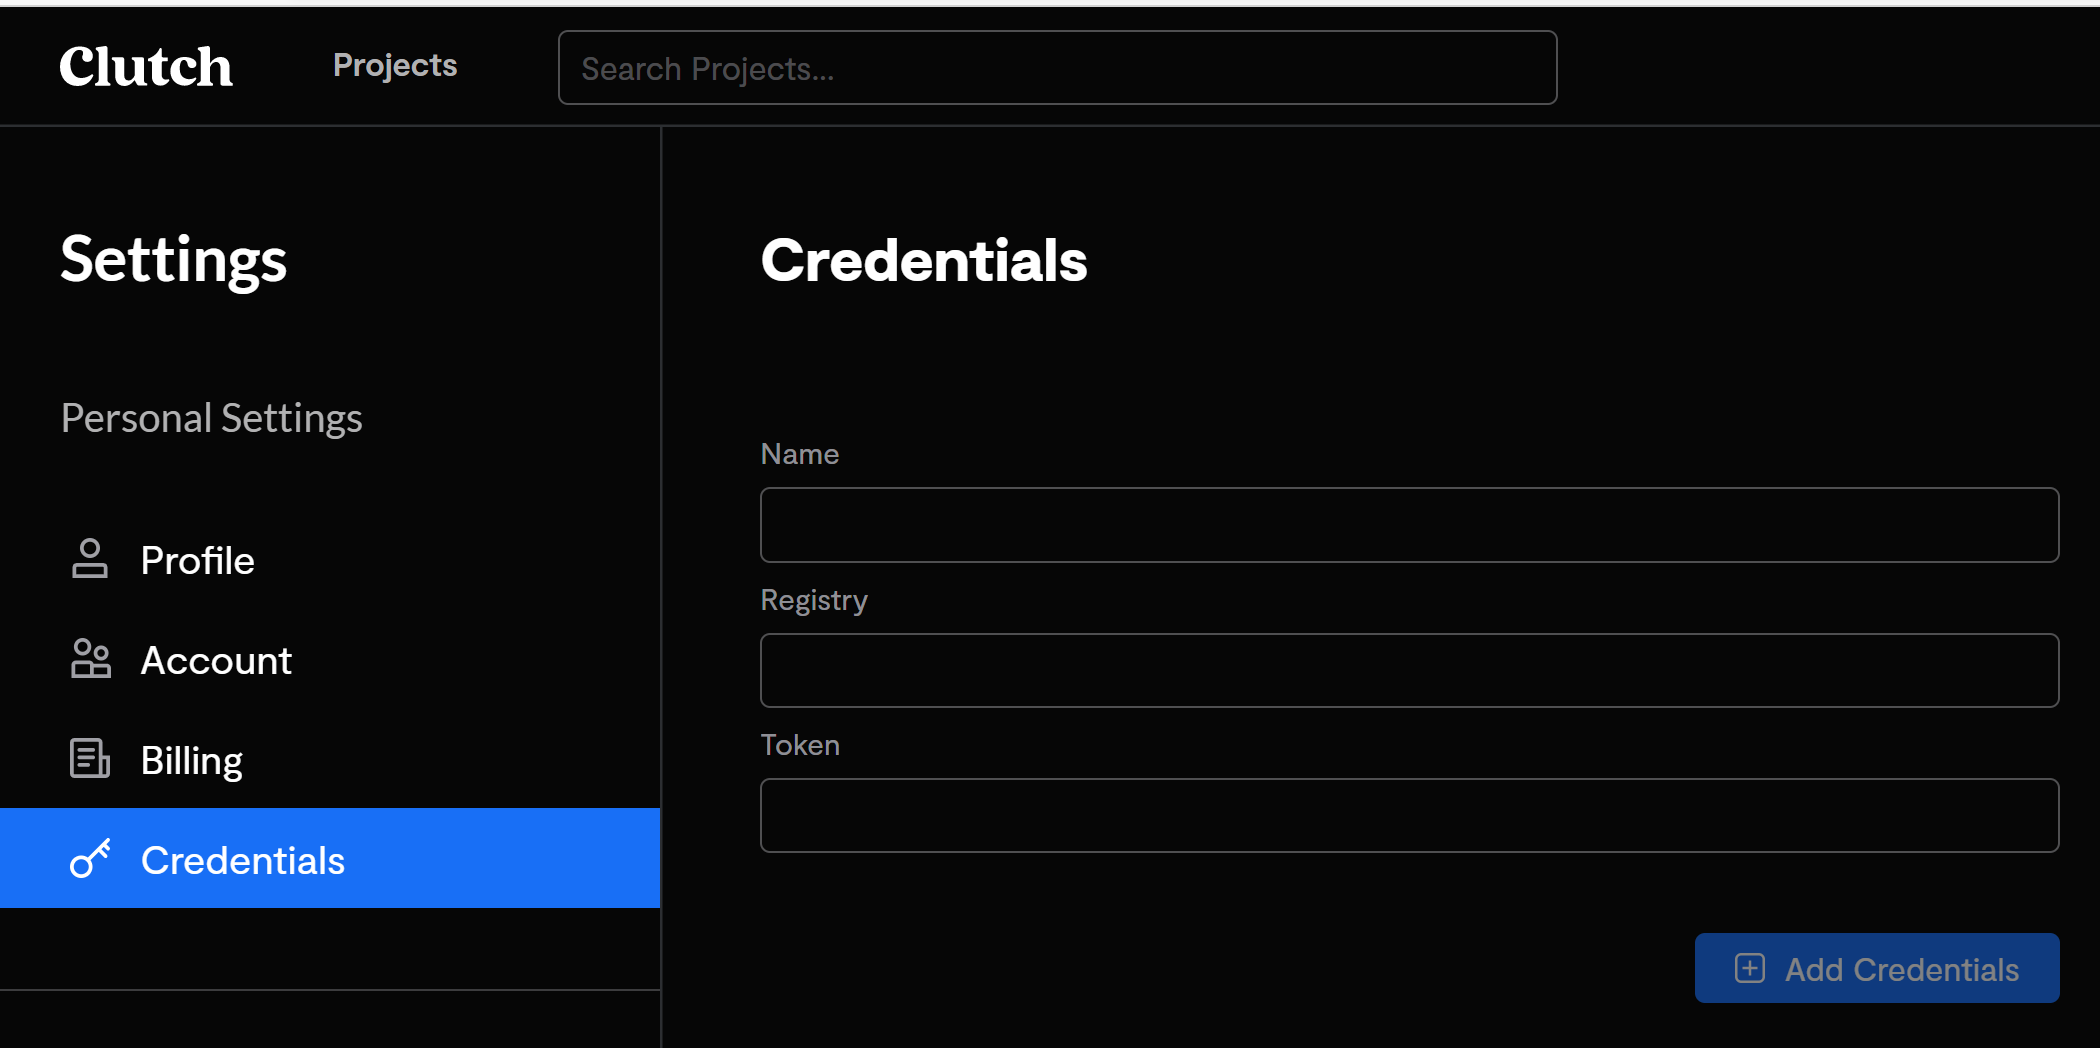 The credentials section of the user setting screen.